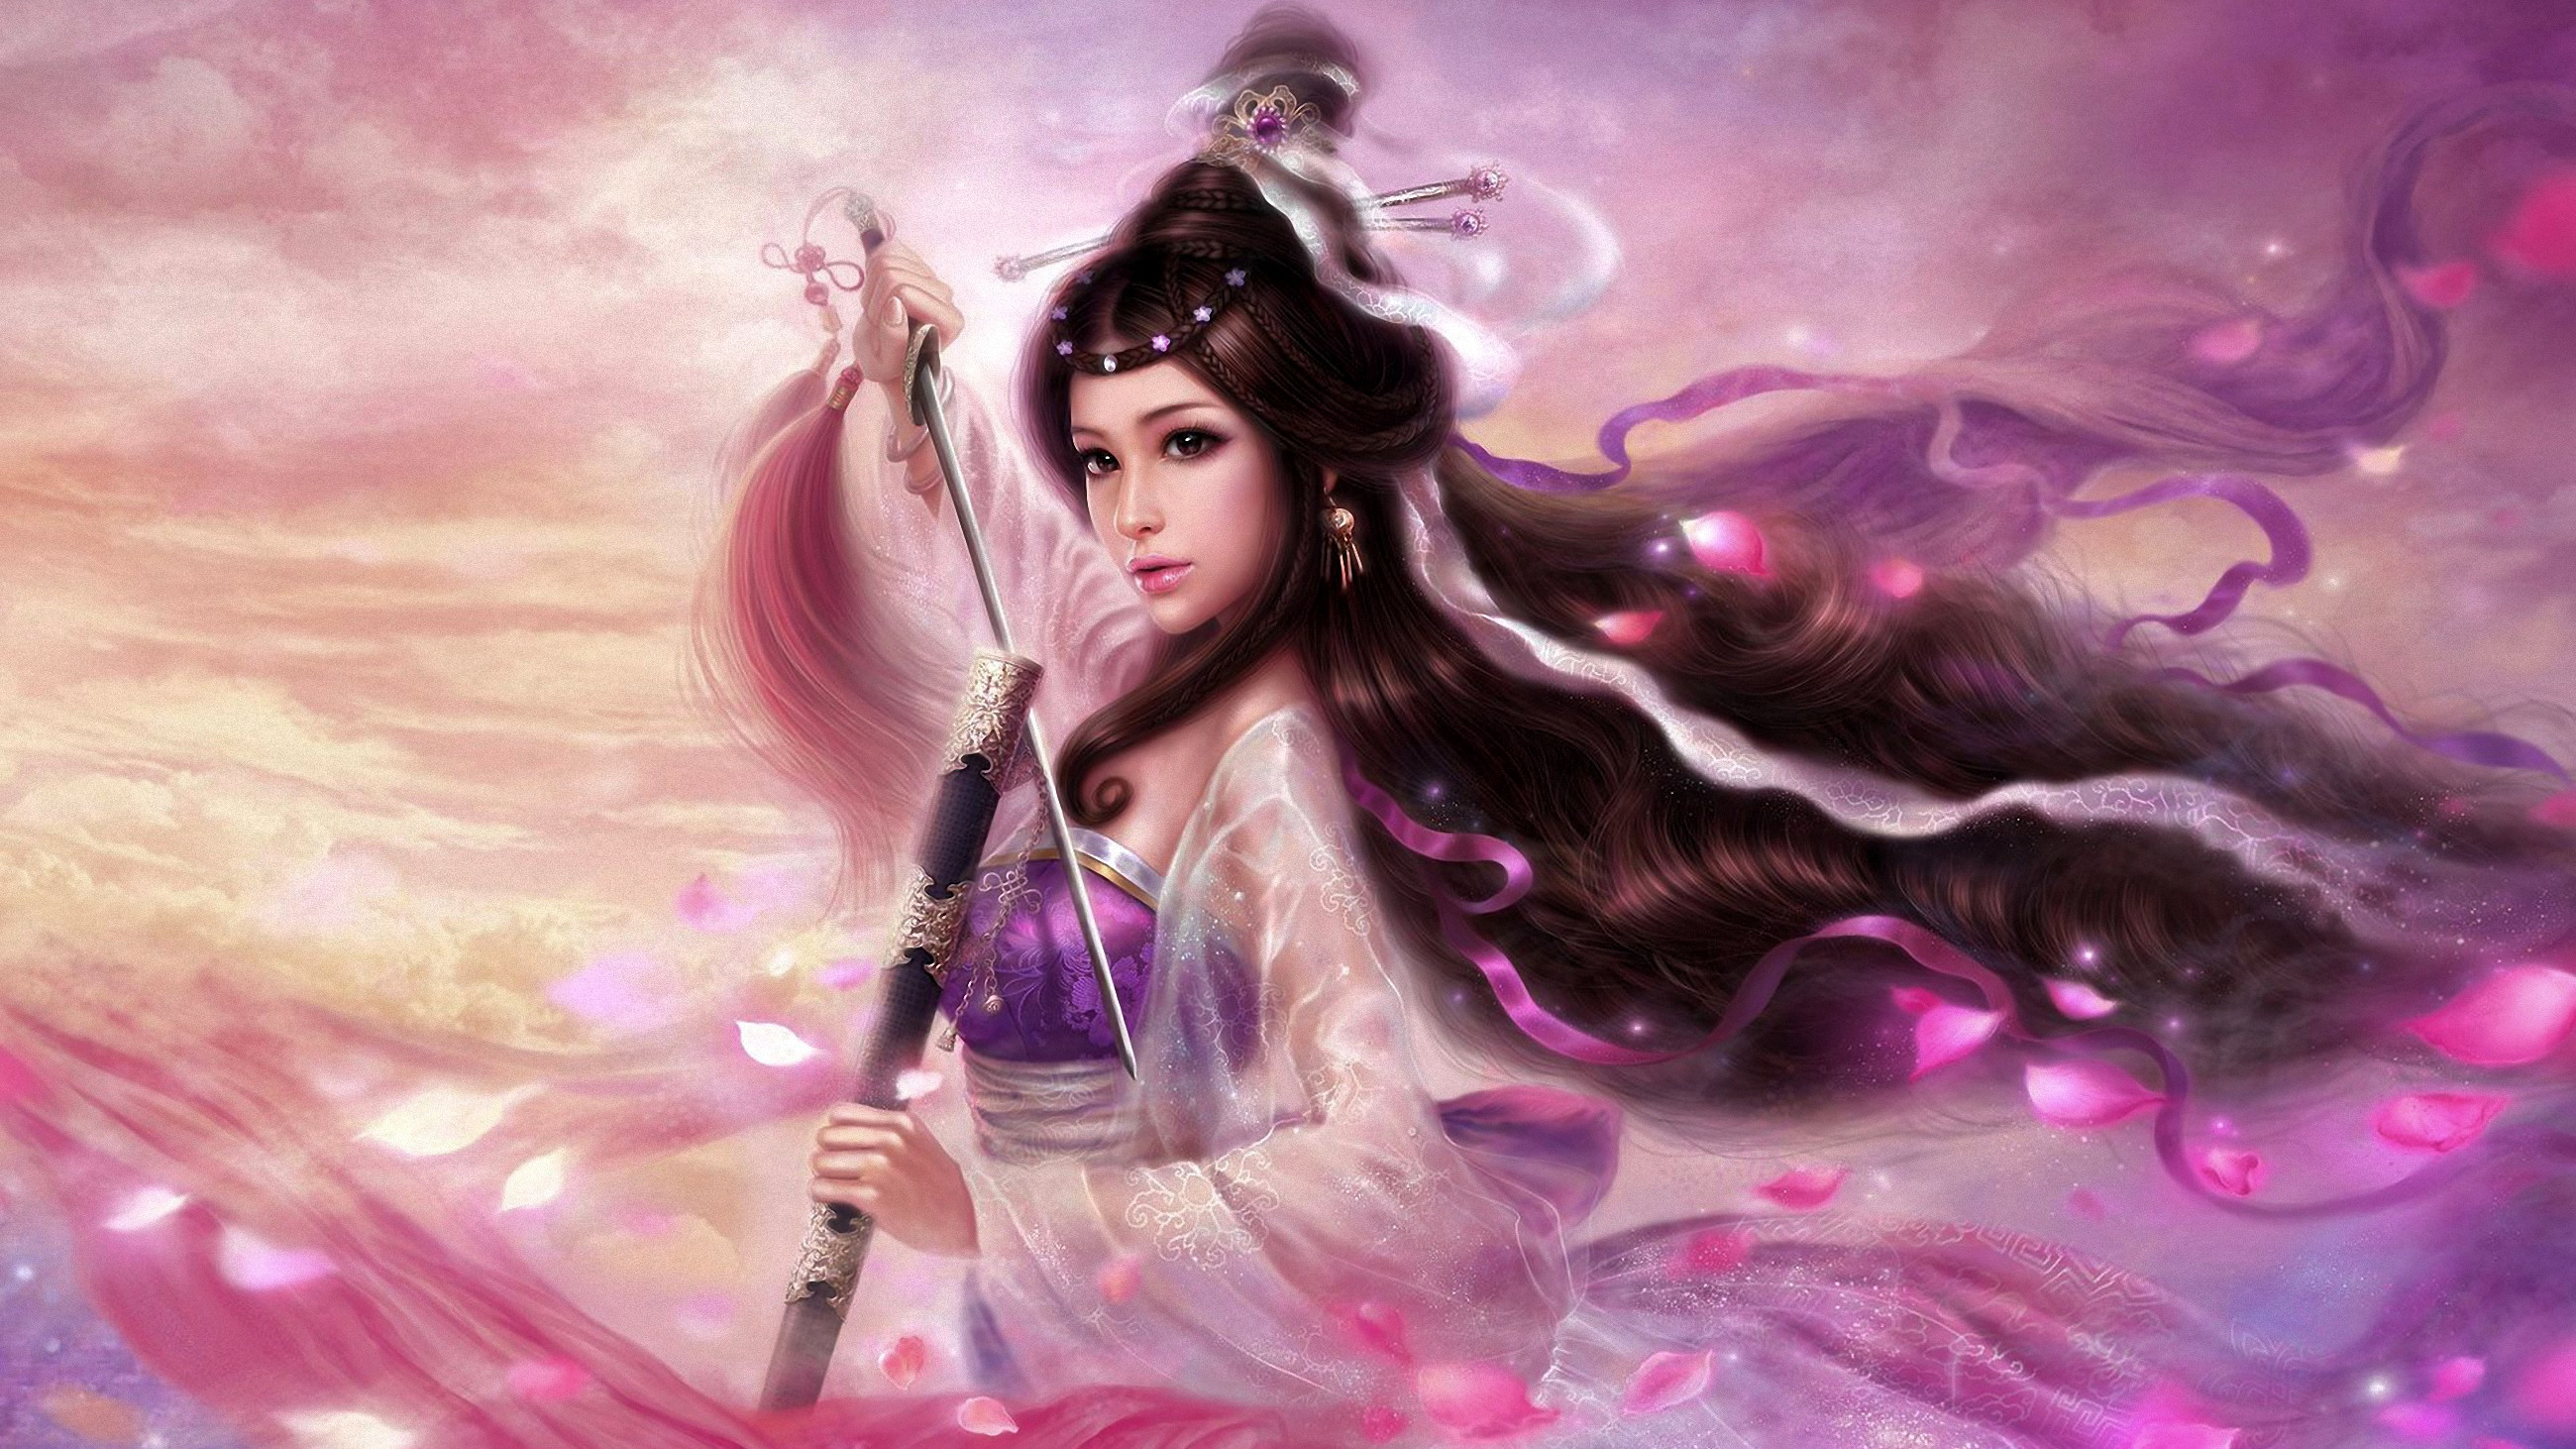 Fantasy - Women Warrior  Sword Princess Warrior Fantasy Wallpaper